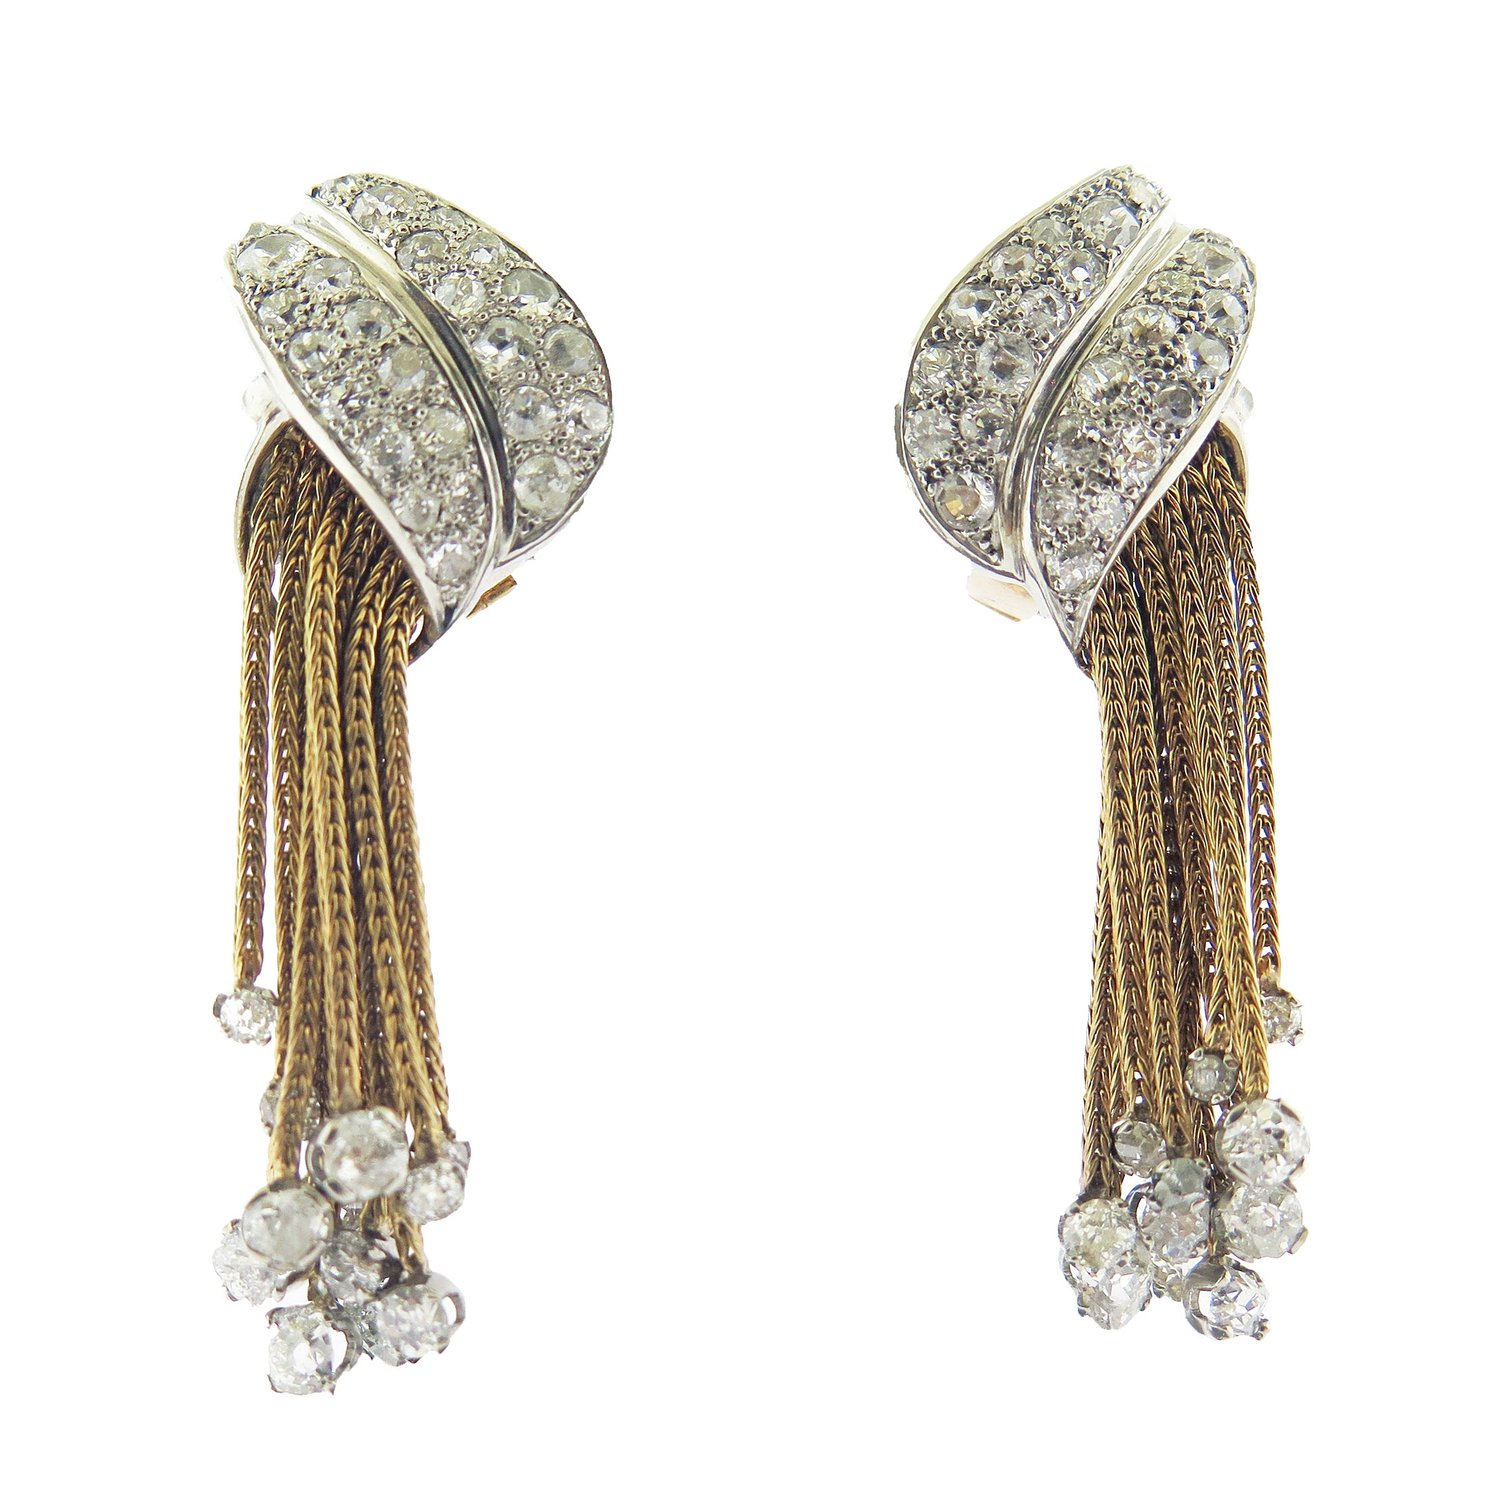 Diamond and Braided Gold Fringe Earrings